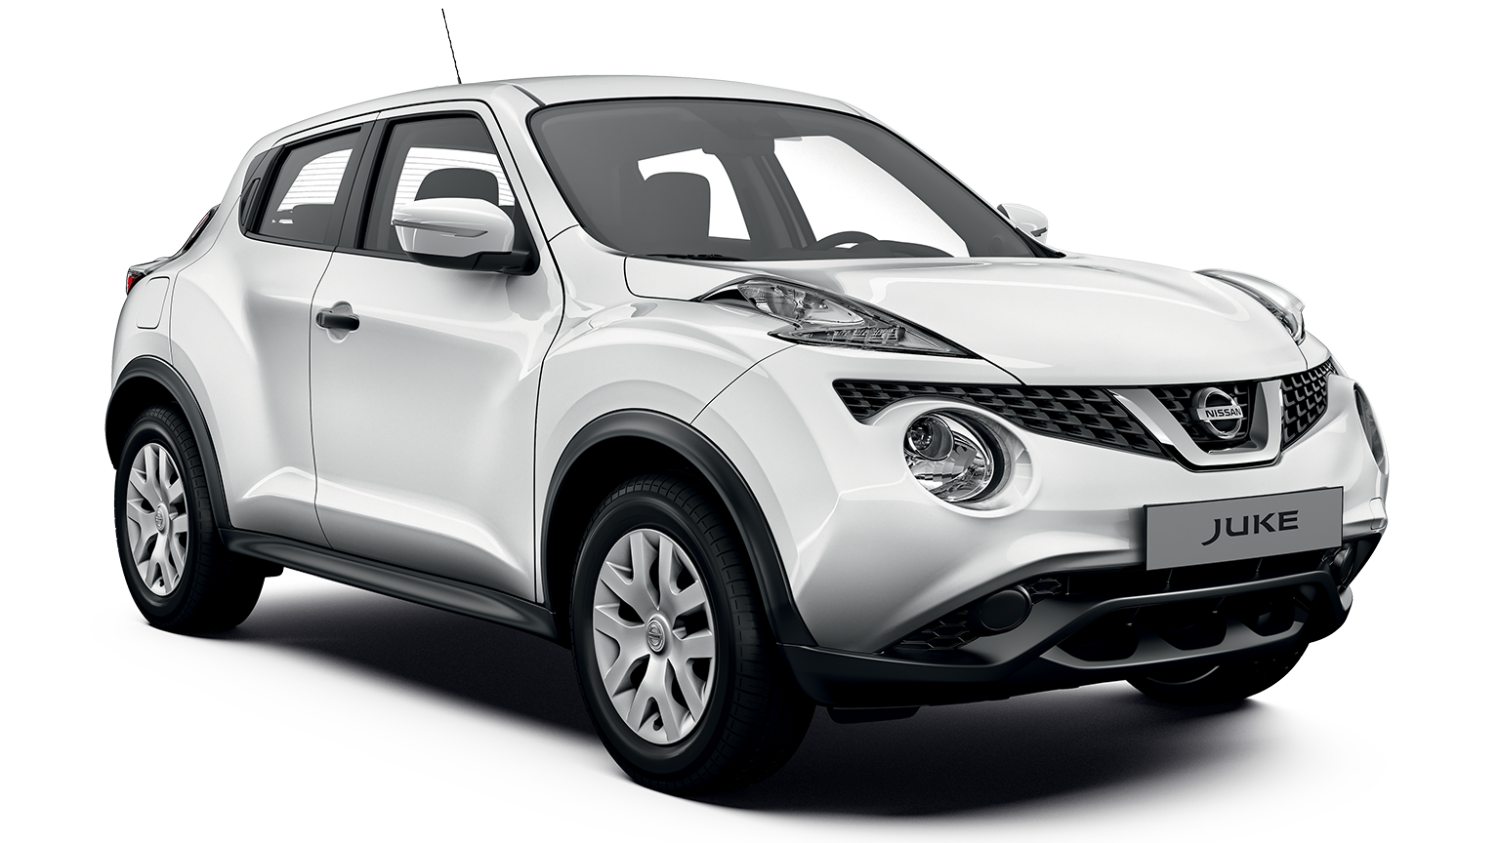 Nissan JUKE white - side view